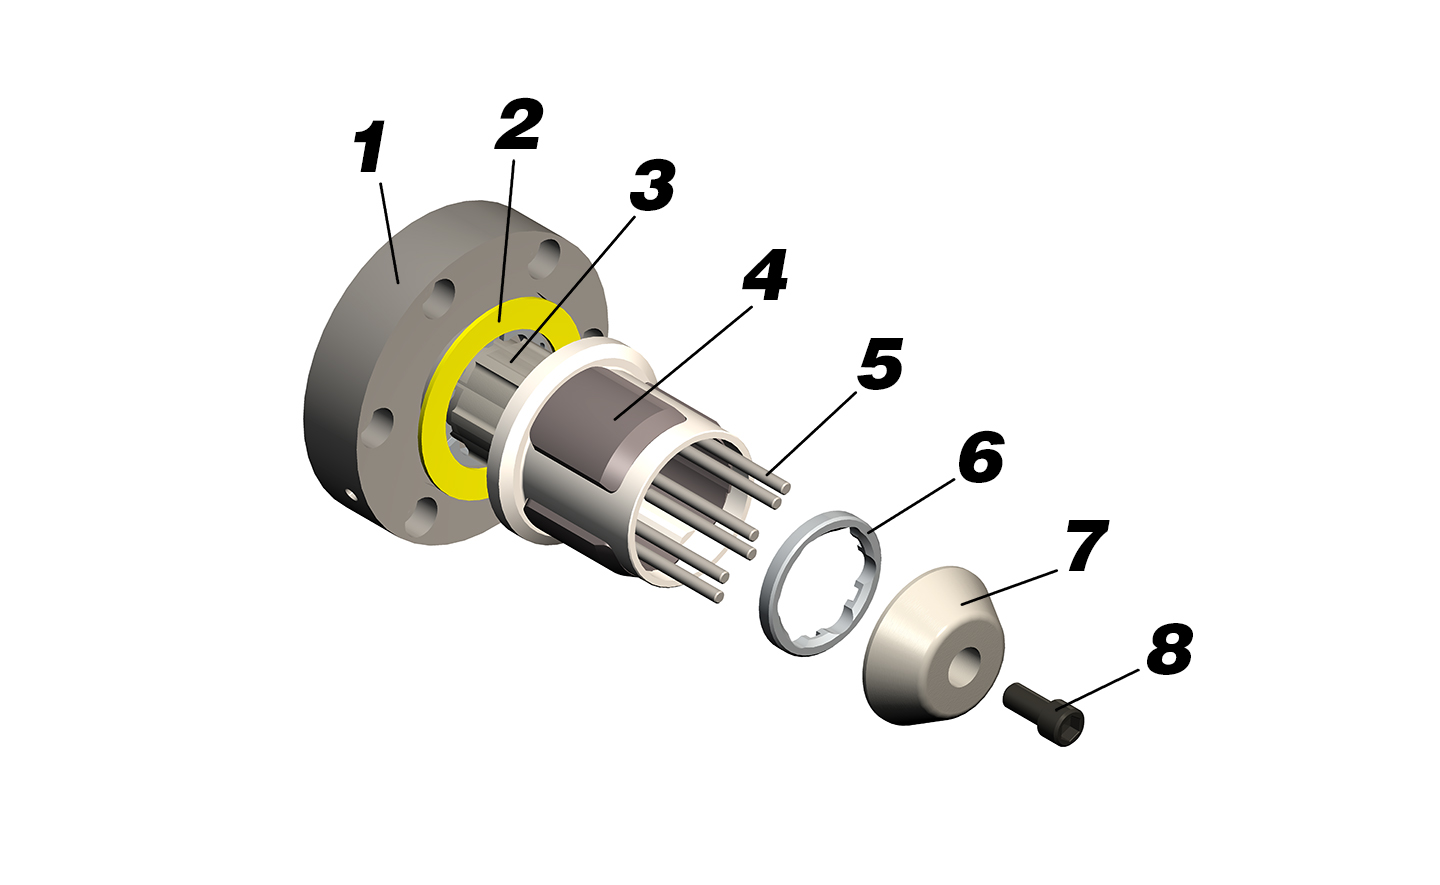 Double E DF-2000 torque activated core chuck components.